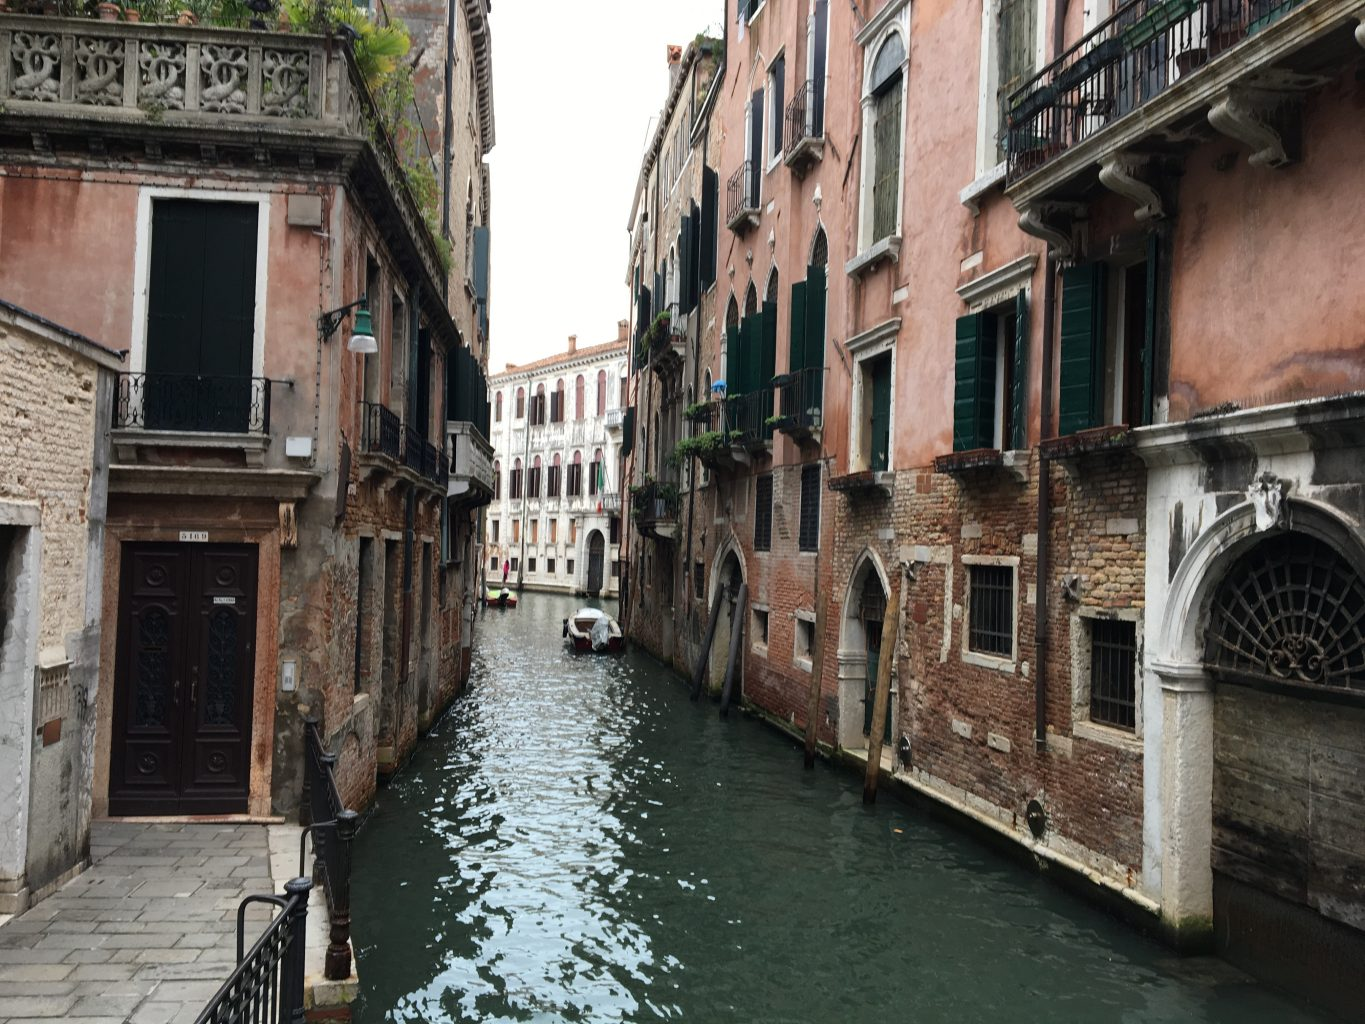 cs venice travel incentive 24 - Venice Travel Incentive Trip